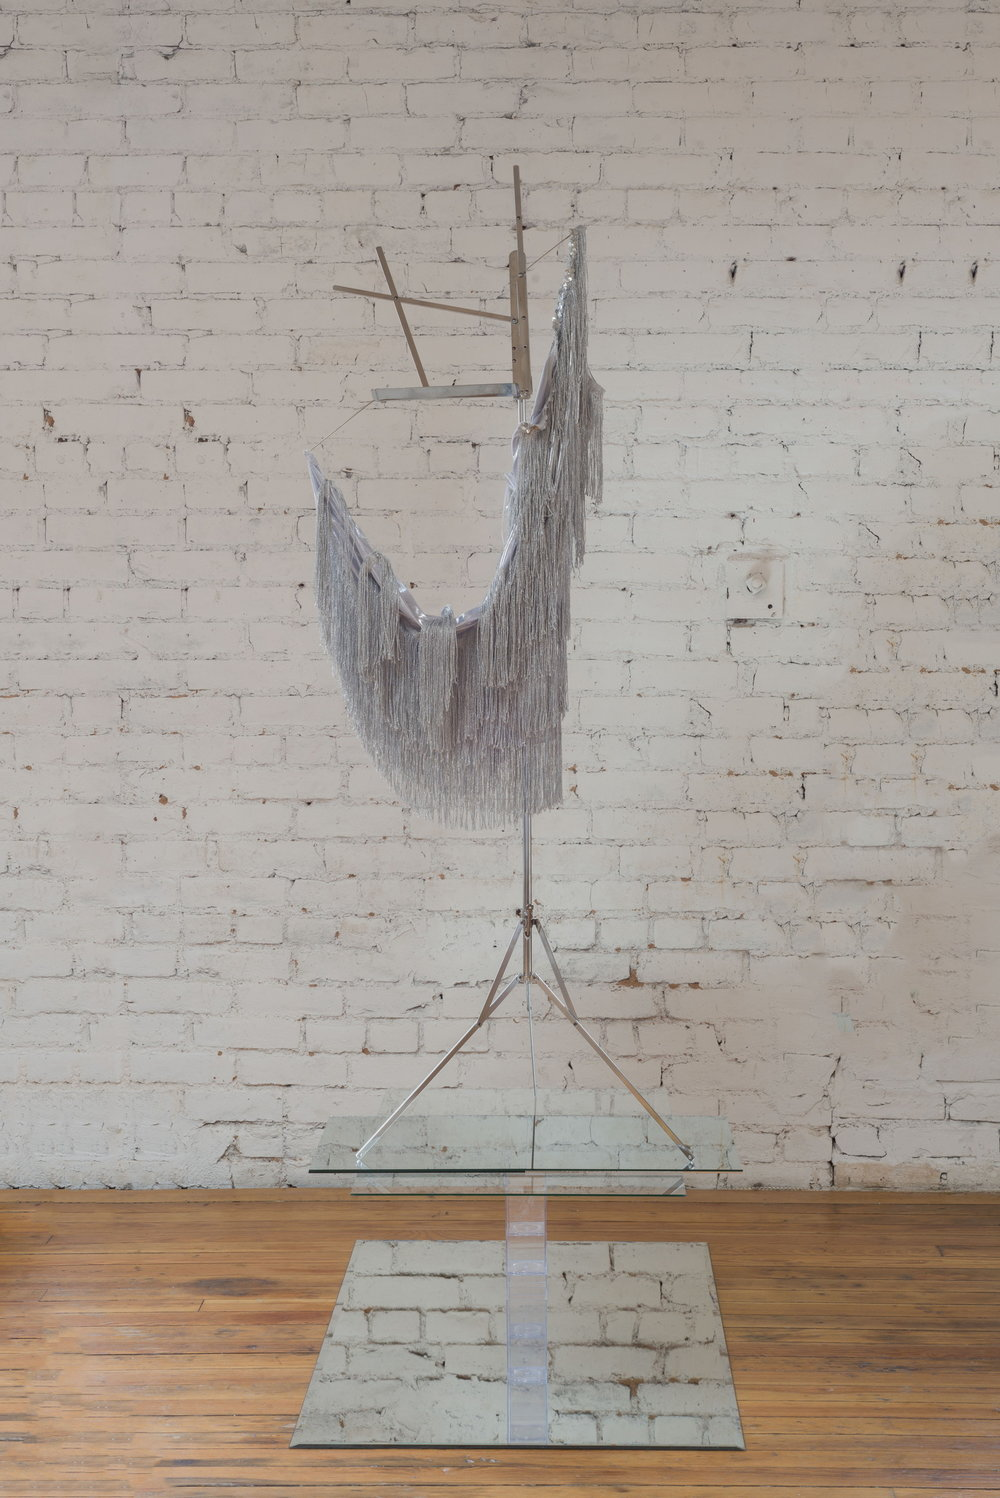 Kayode Ojo,  Untitled (from Trigger, 2014) , 2017, Dazzling Silver Womens Flapper Costume Size Large, Hamilton Stands KB400 Classic American Folding Sheet Music Stand (Chrome), Clear Amac Boxes, mirror, glass, Dimensions variable.